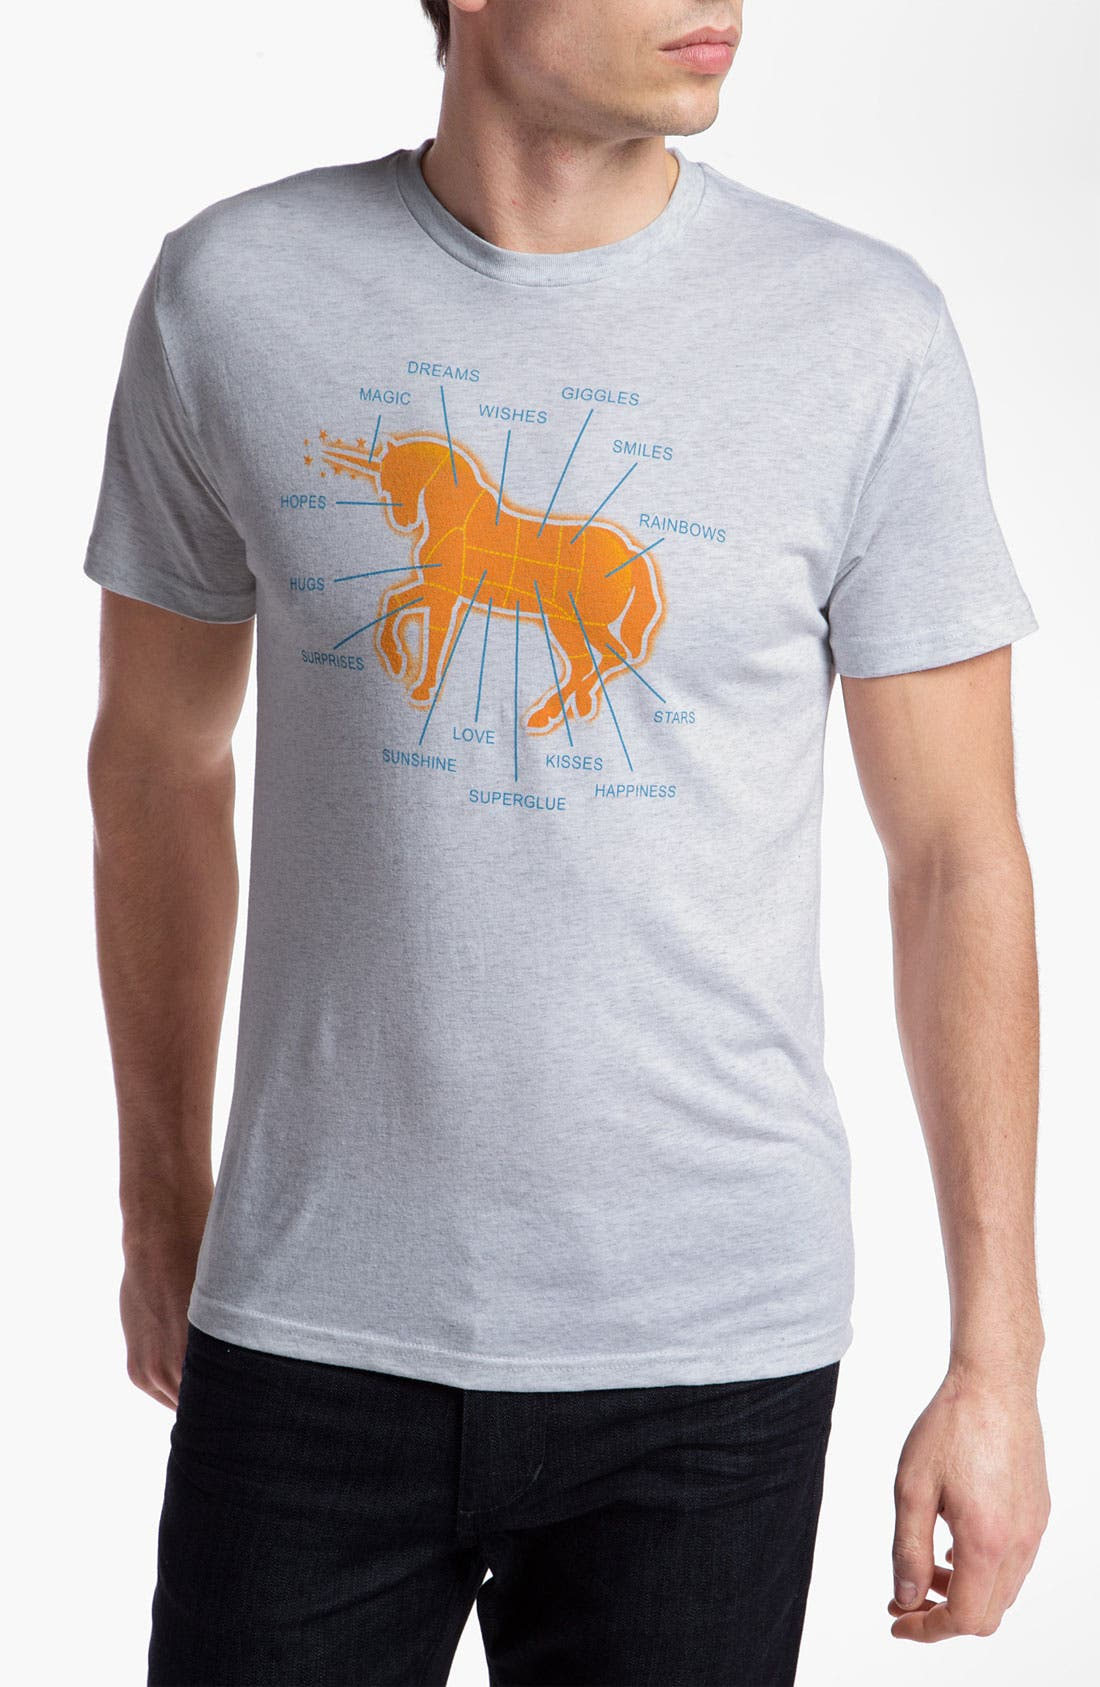 Alternate Image 1 Selected - DiLascia 'Unicorn' Graphic T-Shirt